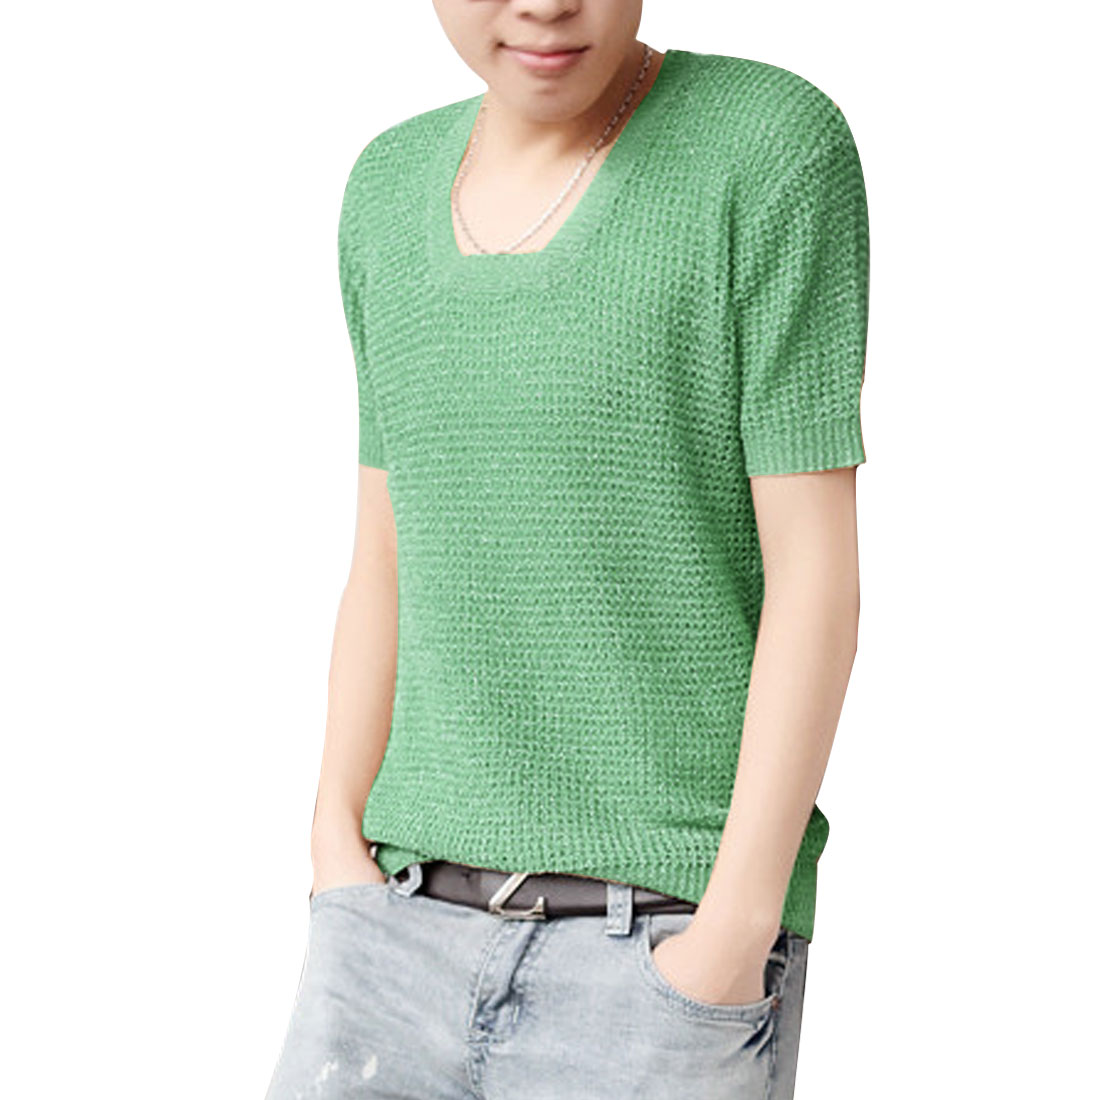 Mens Chic Square Neck Short Sleeve Pale Green Hollow Knitted Shirt M